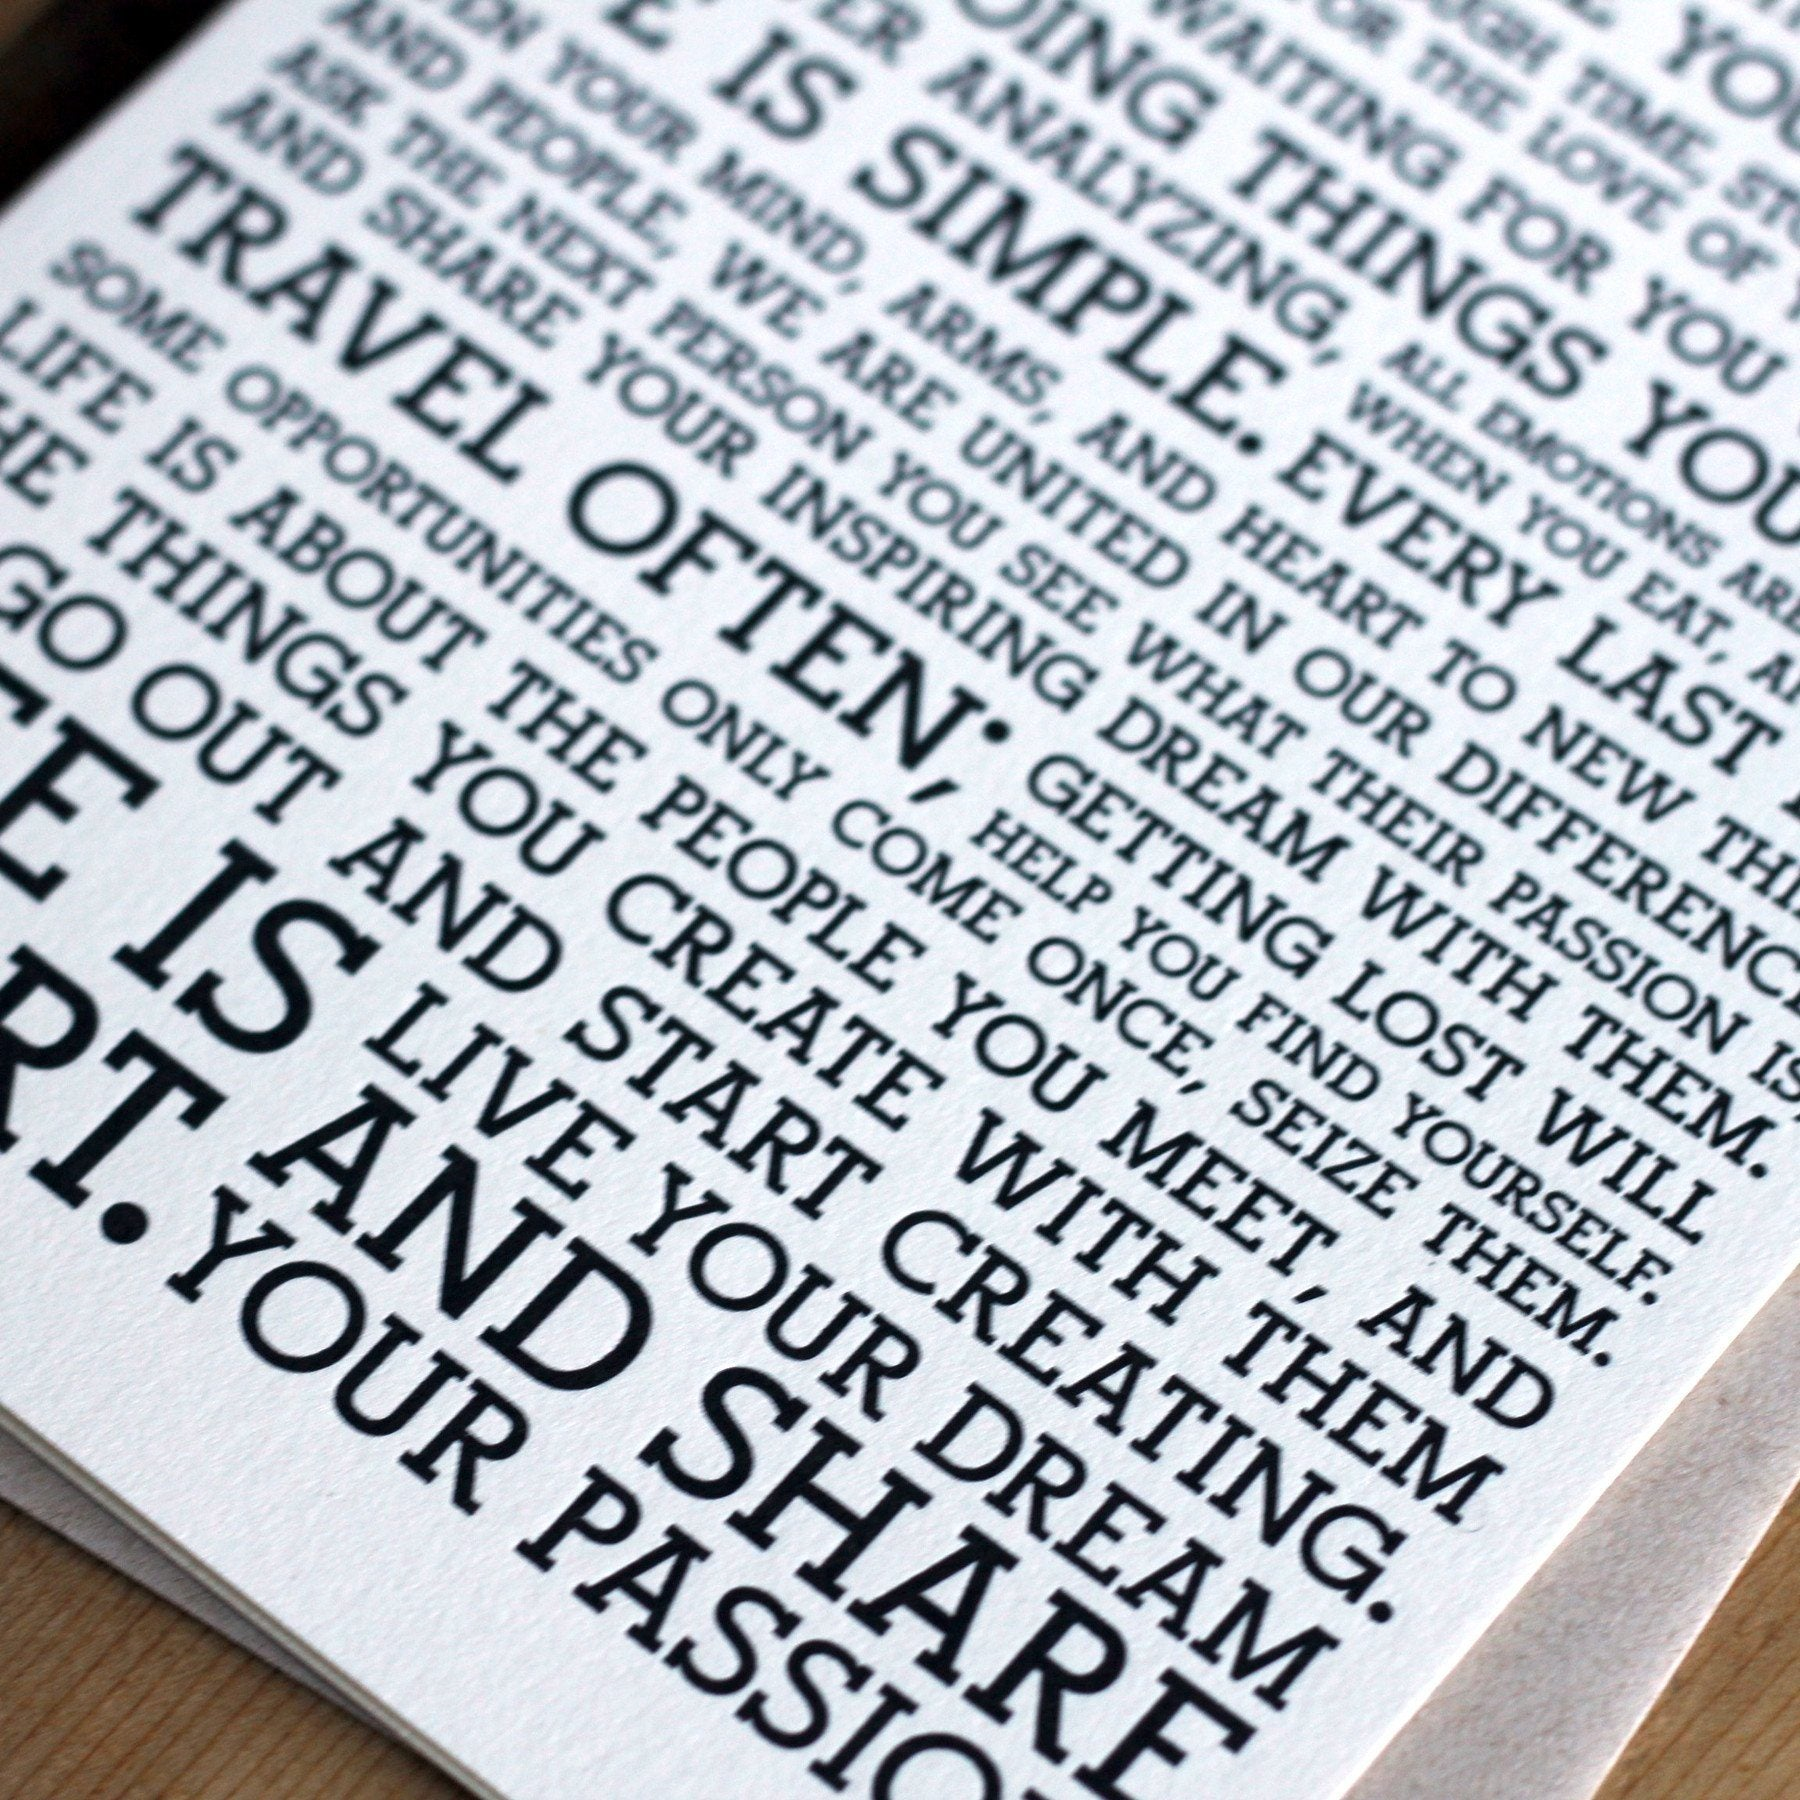 Holstee Manifesto Greeting Cards (6-Pack) - Letterpress Cards- Holstee